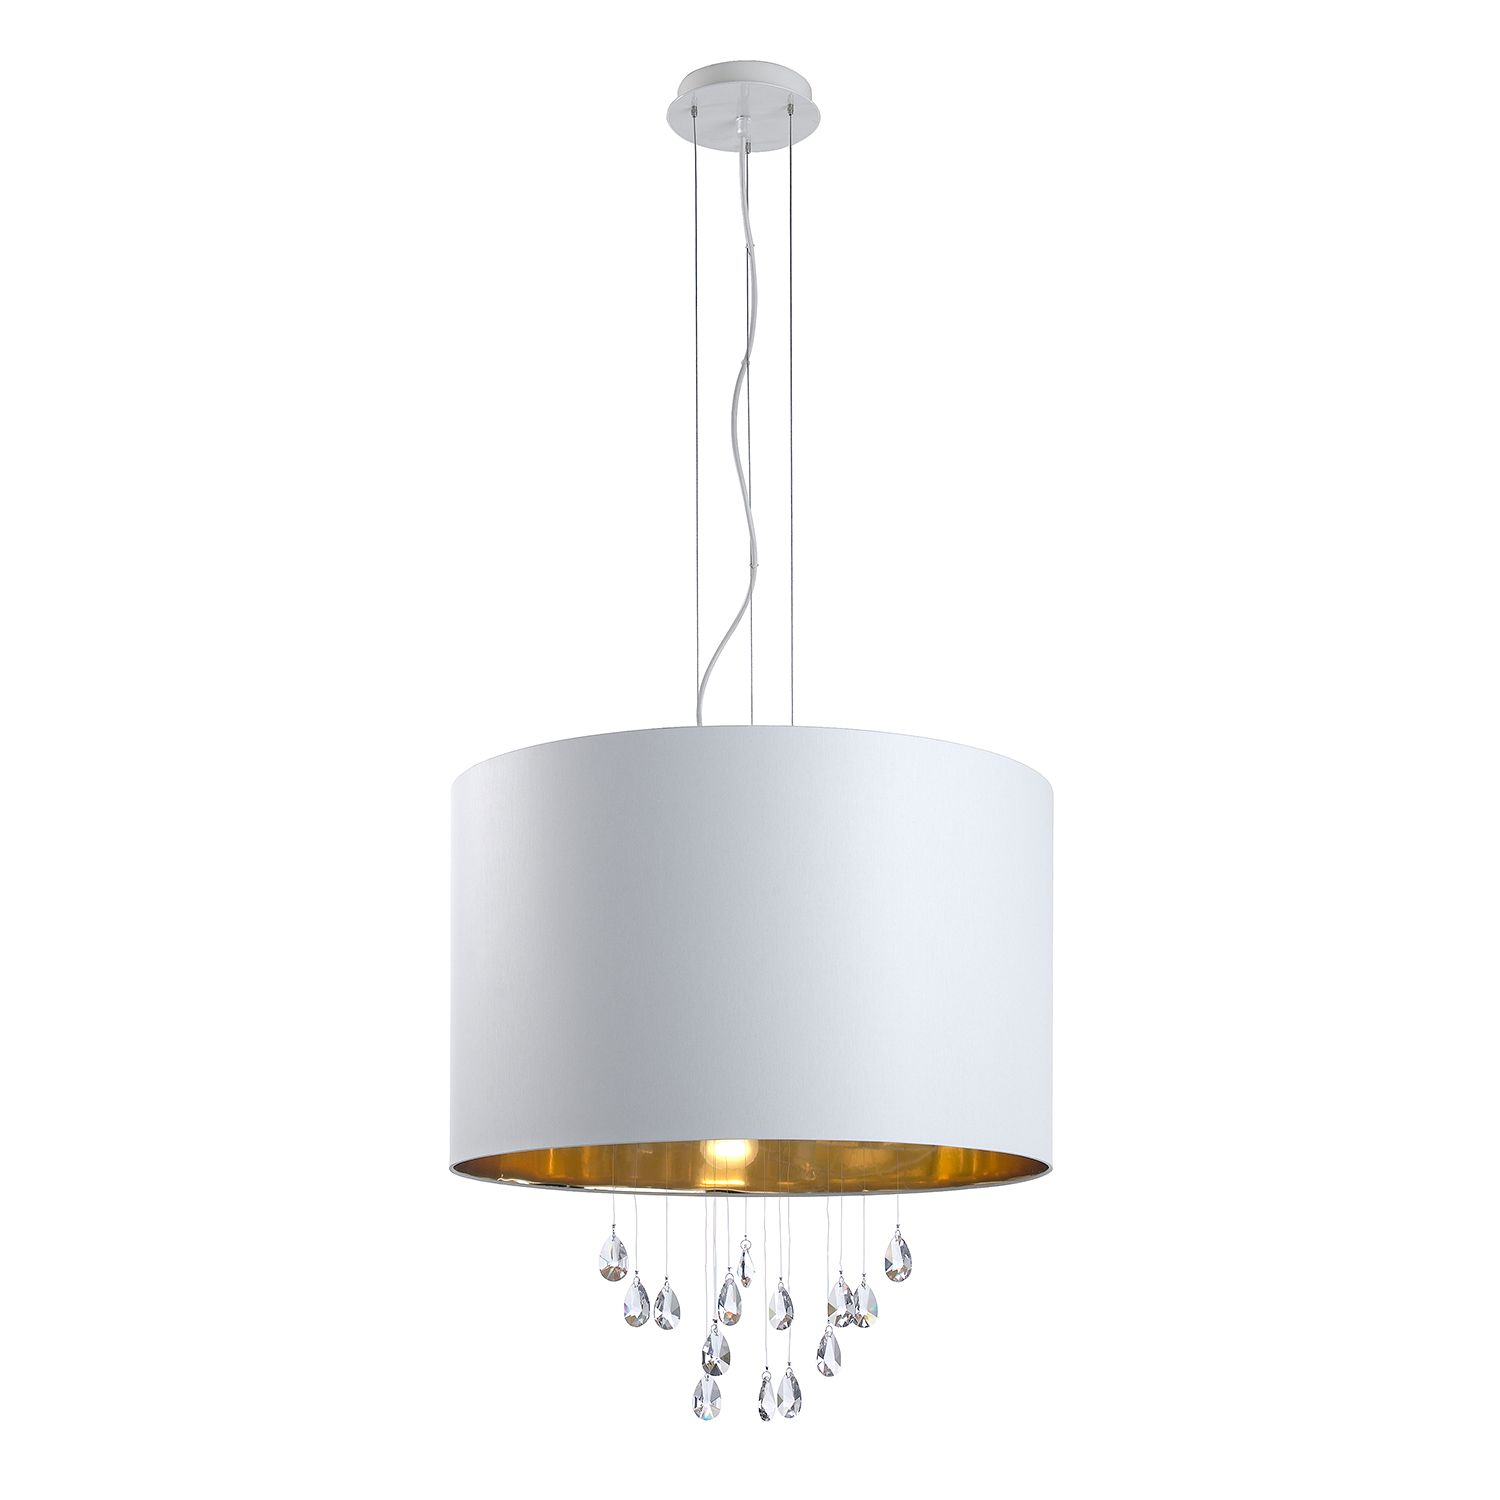 Pendelleuchte Grace by Lampadina ● Metall/Glas ● Gold ● 5-flammig- Lampadina